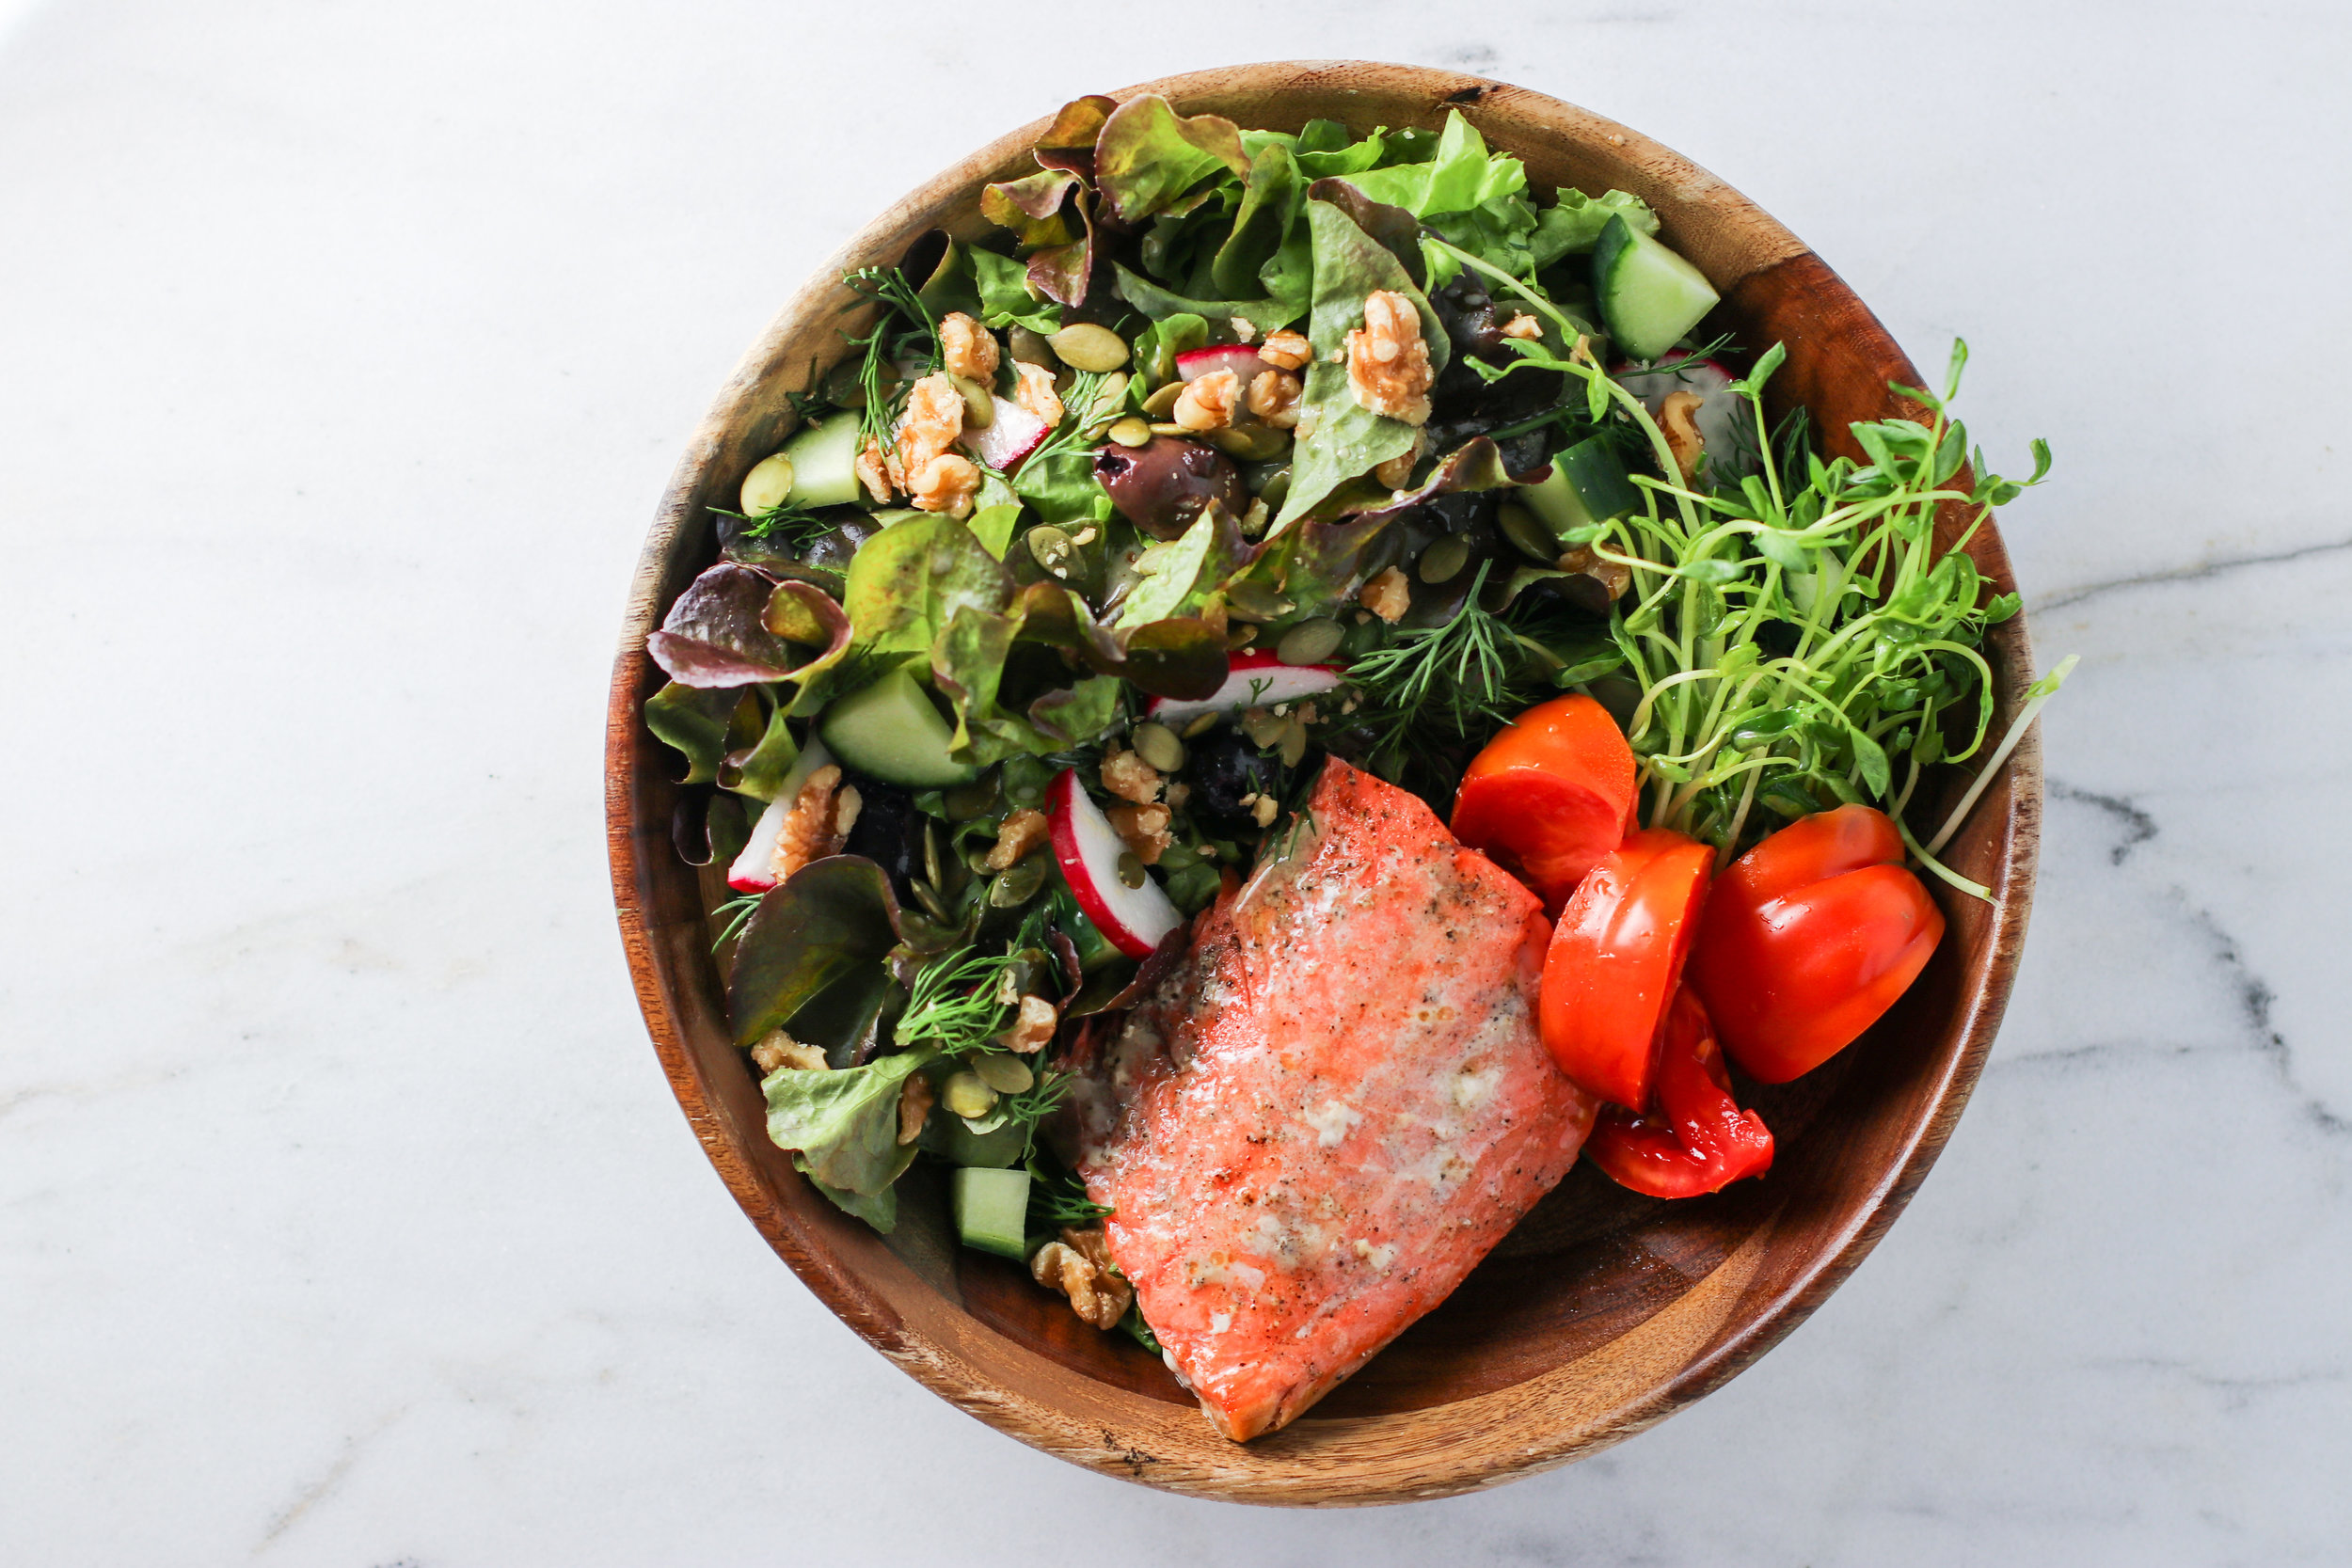 Giant Salad with Radish, Walnuts, and Dill + Simply Baked Wild Salmon and Heirloom Tomato